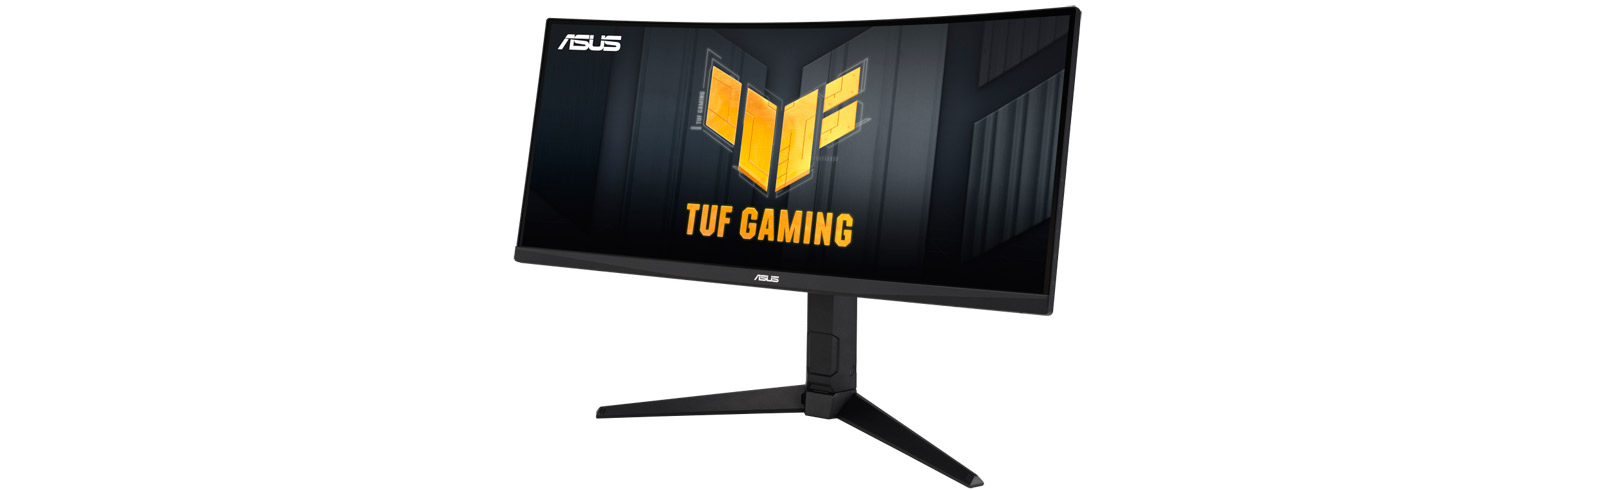 """The Asus TUF Gaming VG30VQL1A goes official with a 30"""" display, 1500R curvature"""